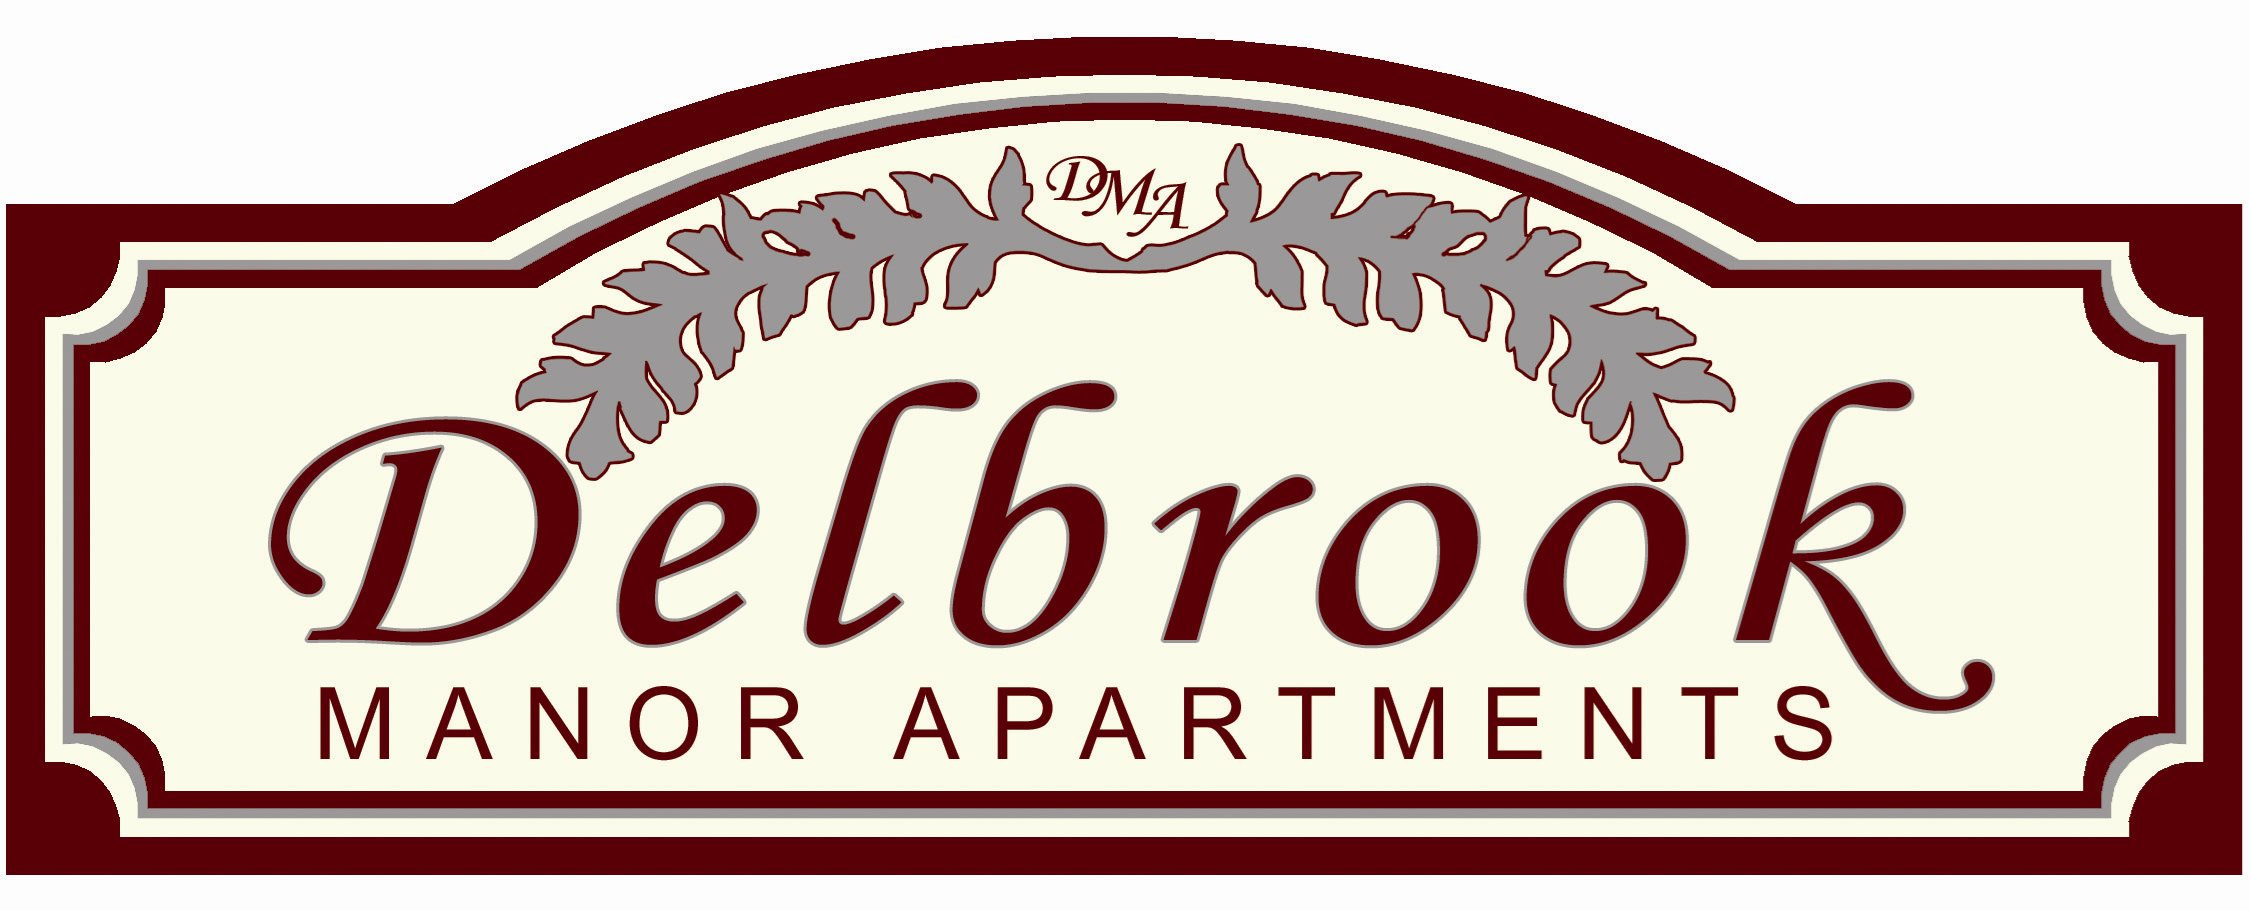 Delbrook Manor Apartments Logo in Mechanicsburg, PA | Delbrook Manor Apartments | Property Management, Inc.